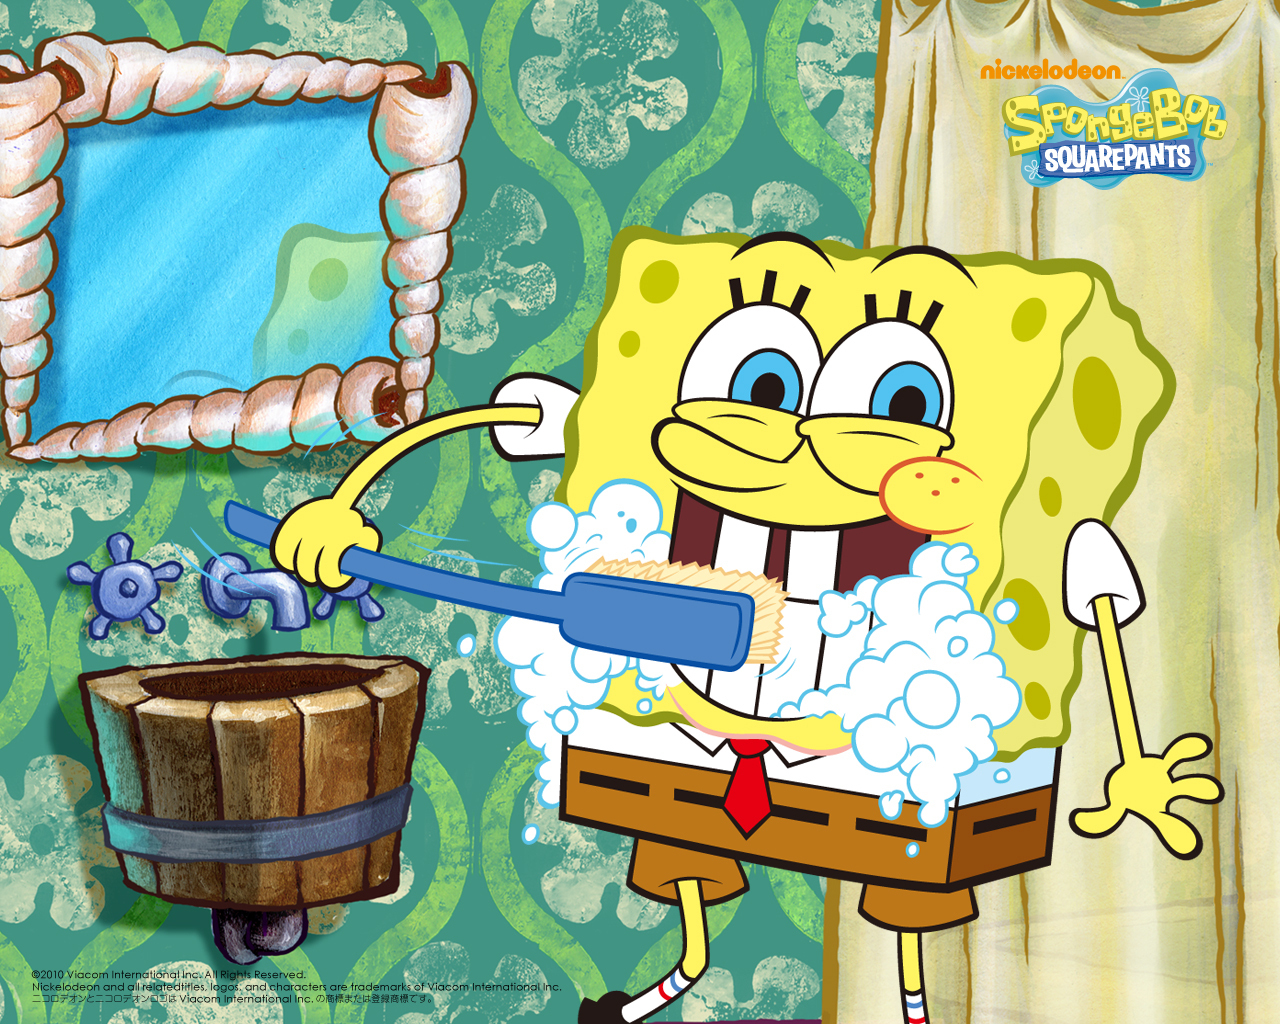 Spongebob squarepants brushing teeth